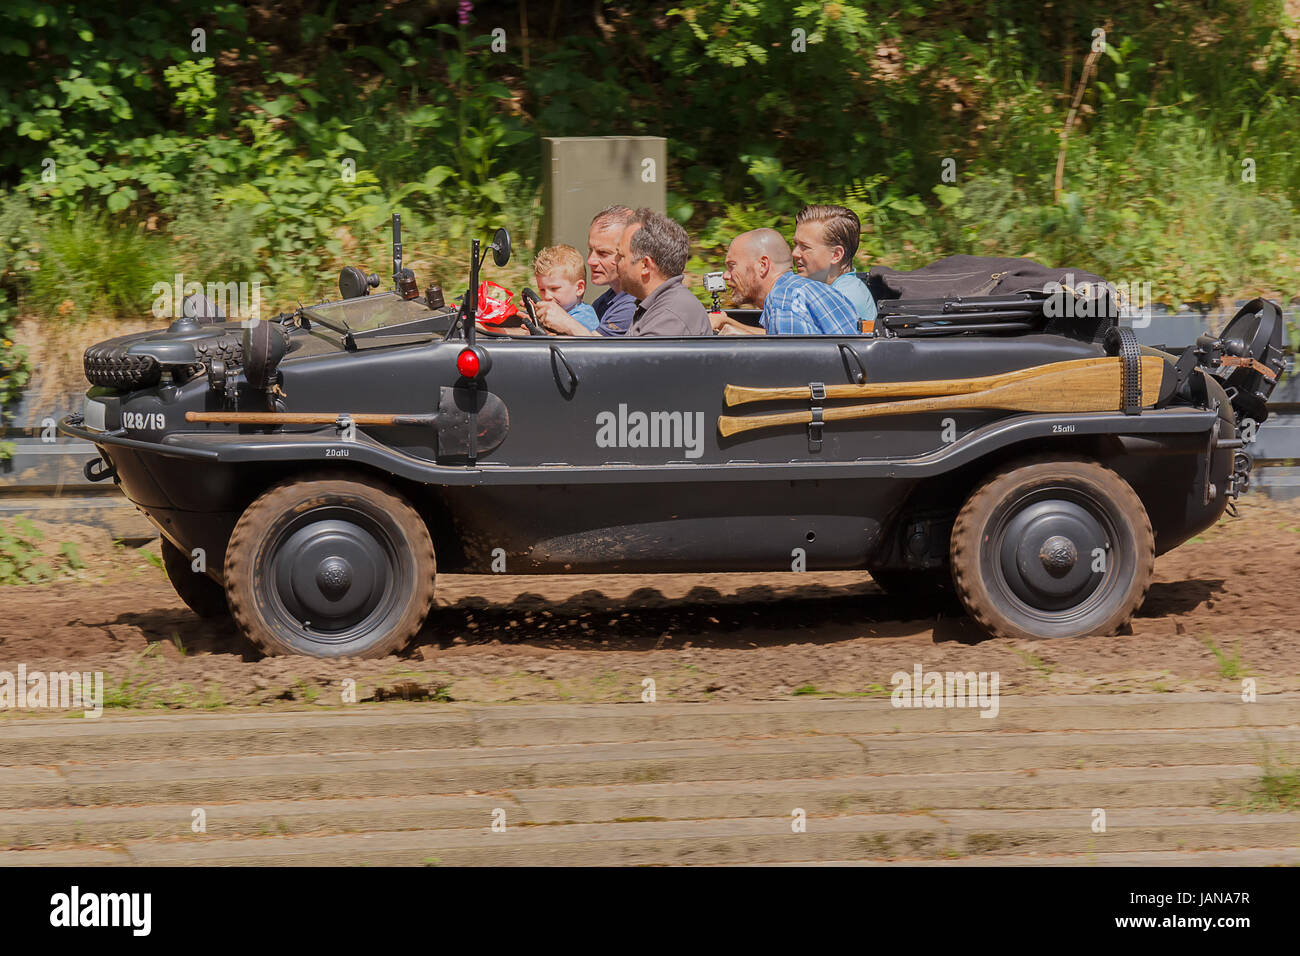 VW Typ 128 Schwimmwagen at Militracks event - Stock Image